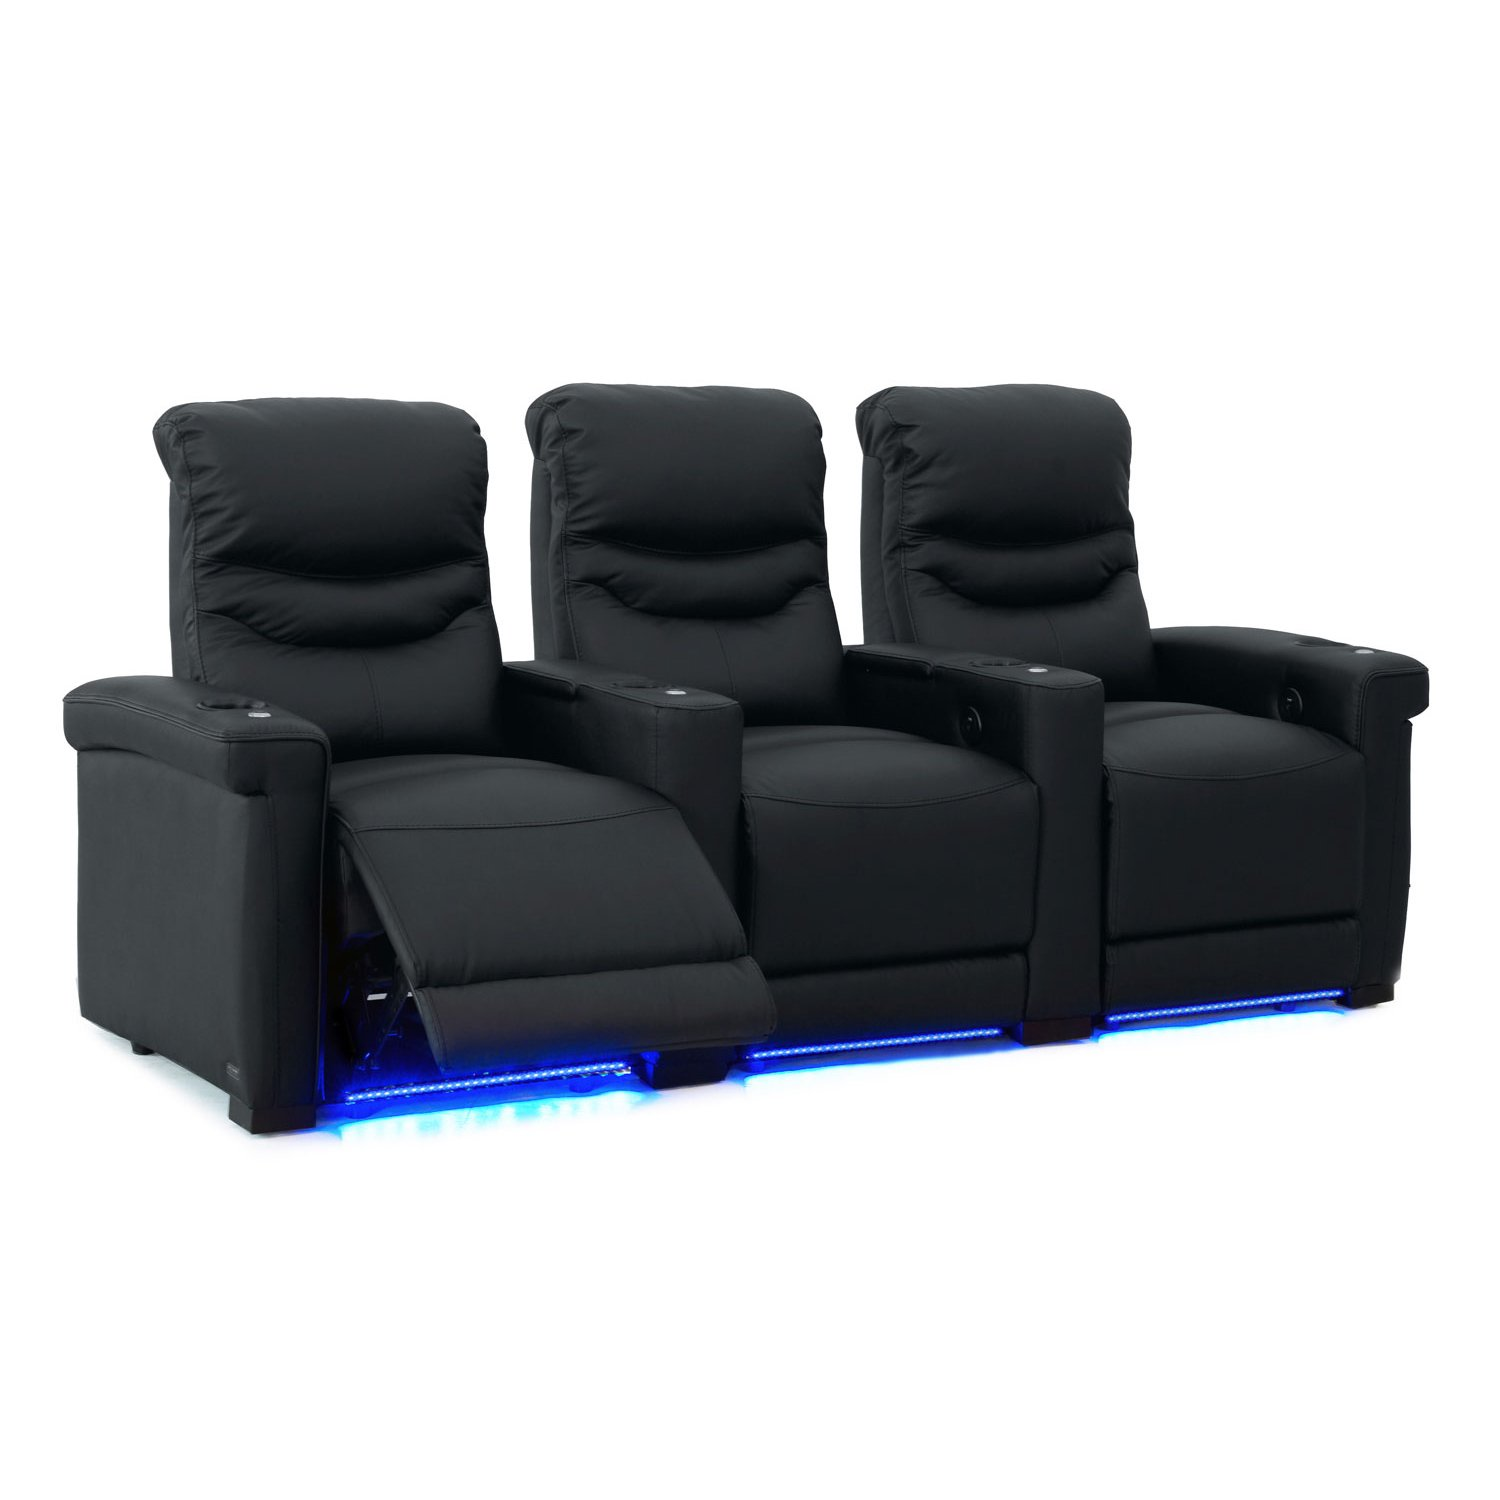 Octane Challenger XS700 Row of 3 Seats, Straight Row in Black Leather with Power Recline by Octane Seating